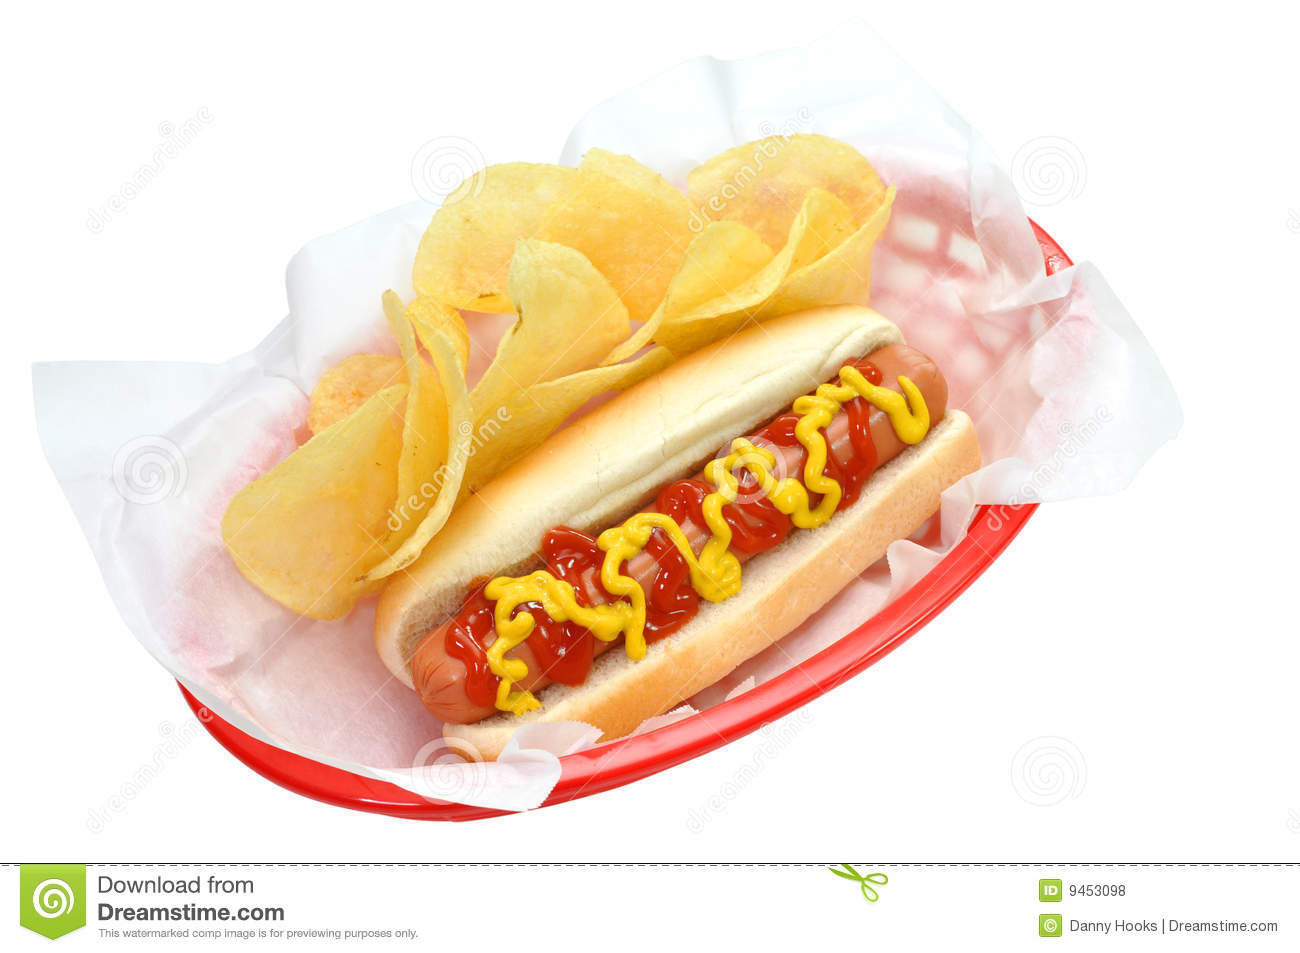 Hotdog And Chips Clipart Hot Dog, Chips, Isolat...